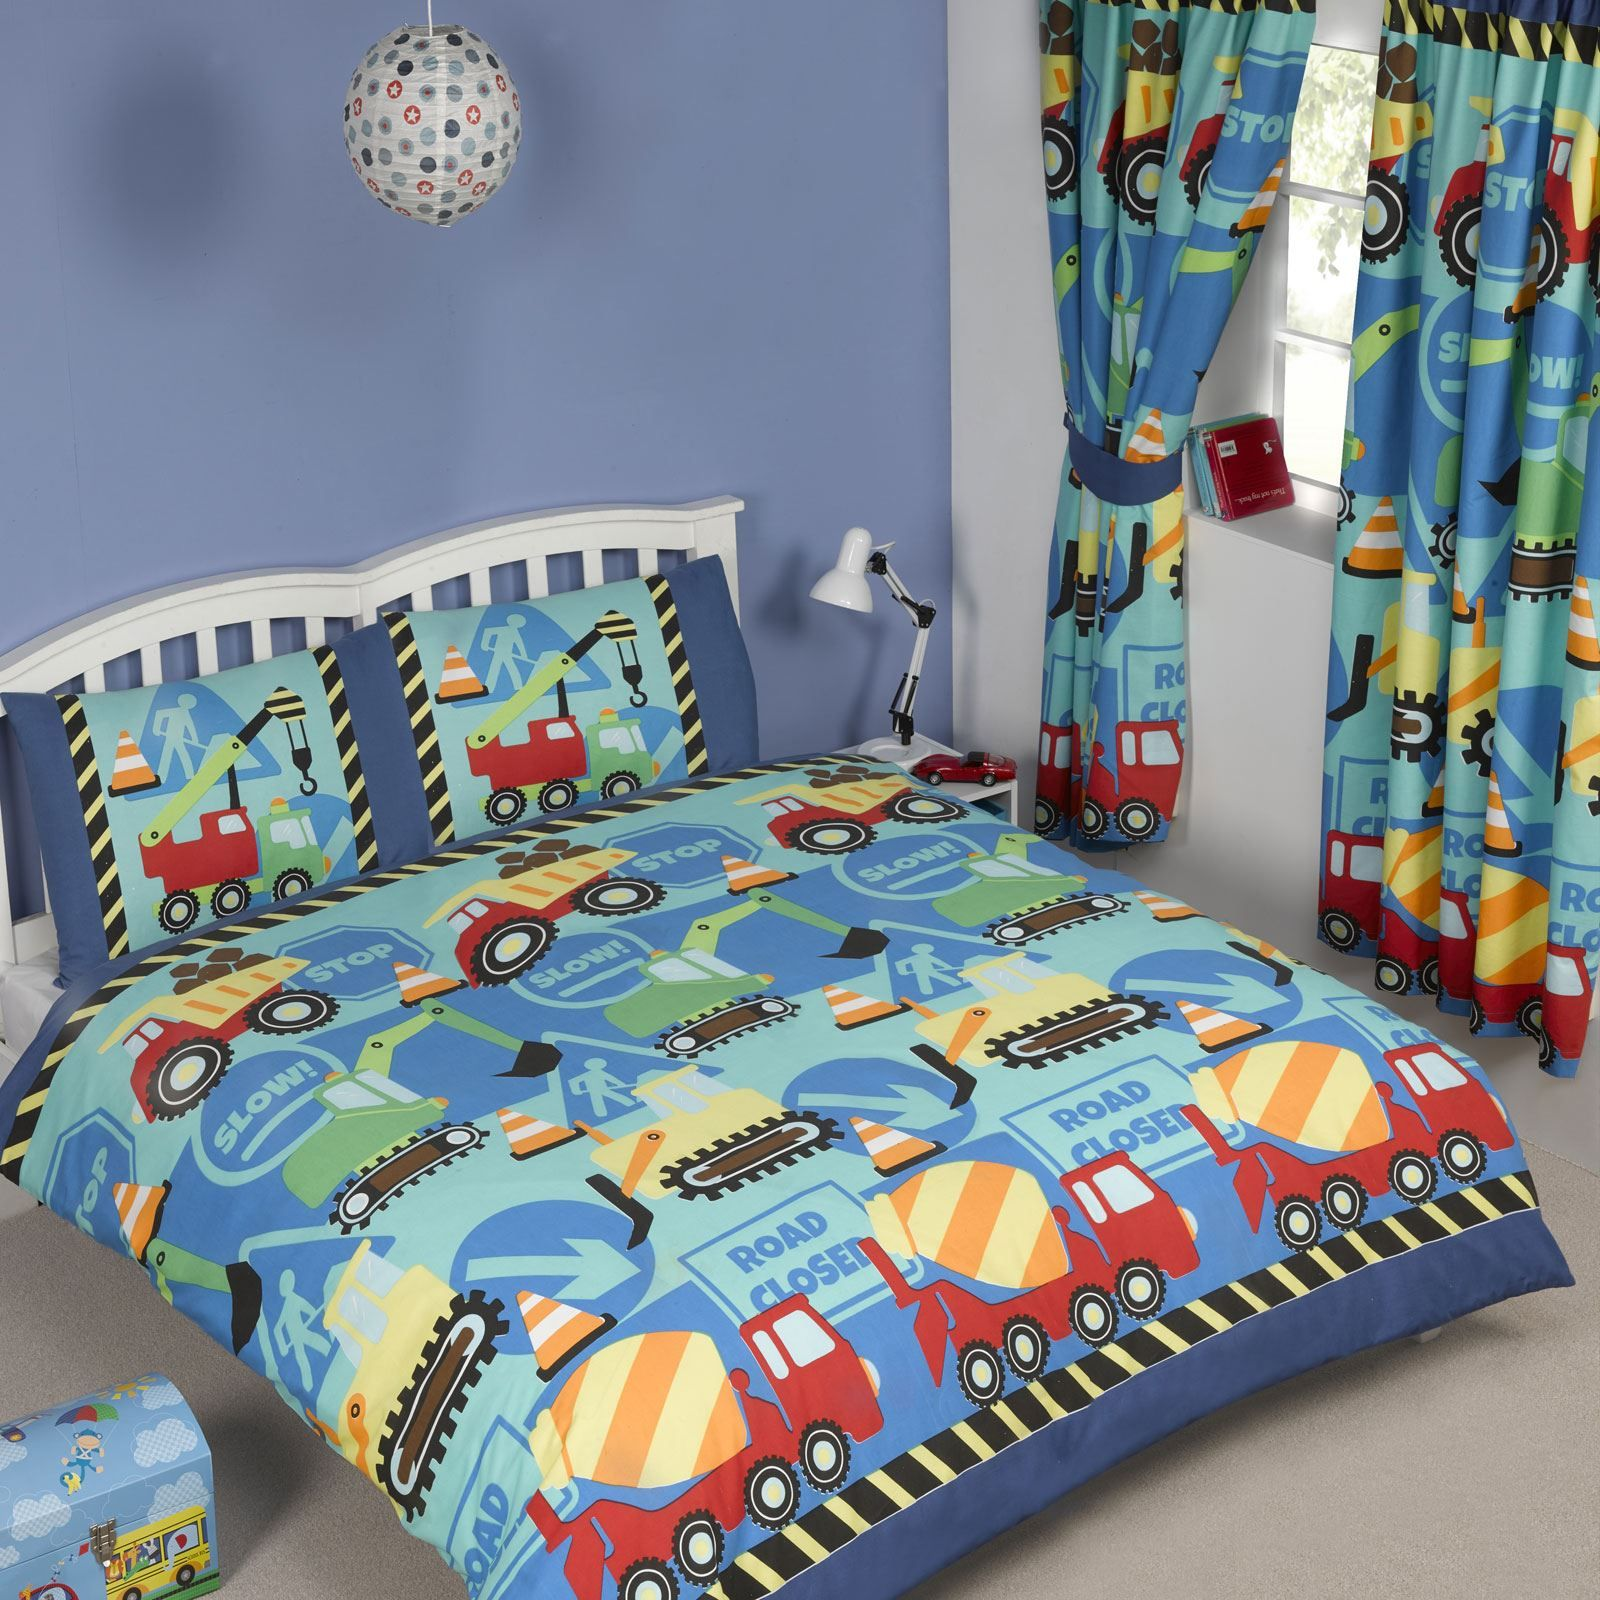 Construction Time Boys Bedding Crib/Toddler Twin or Full ...